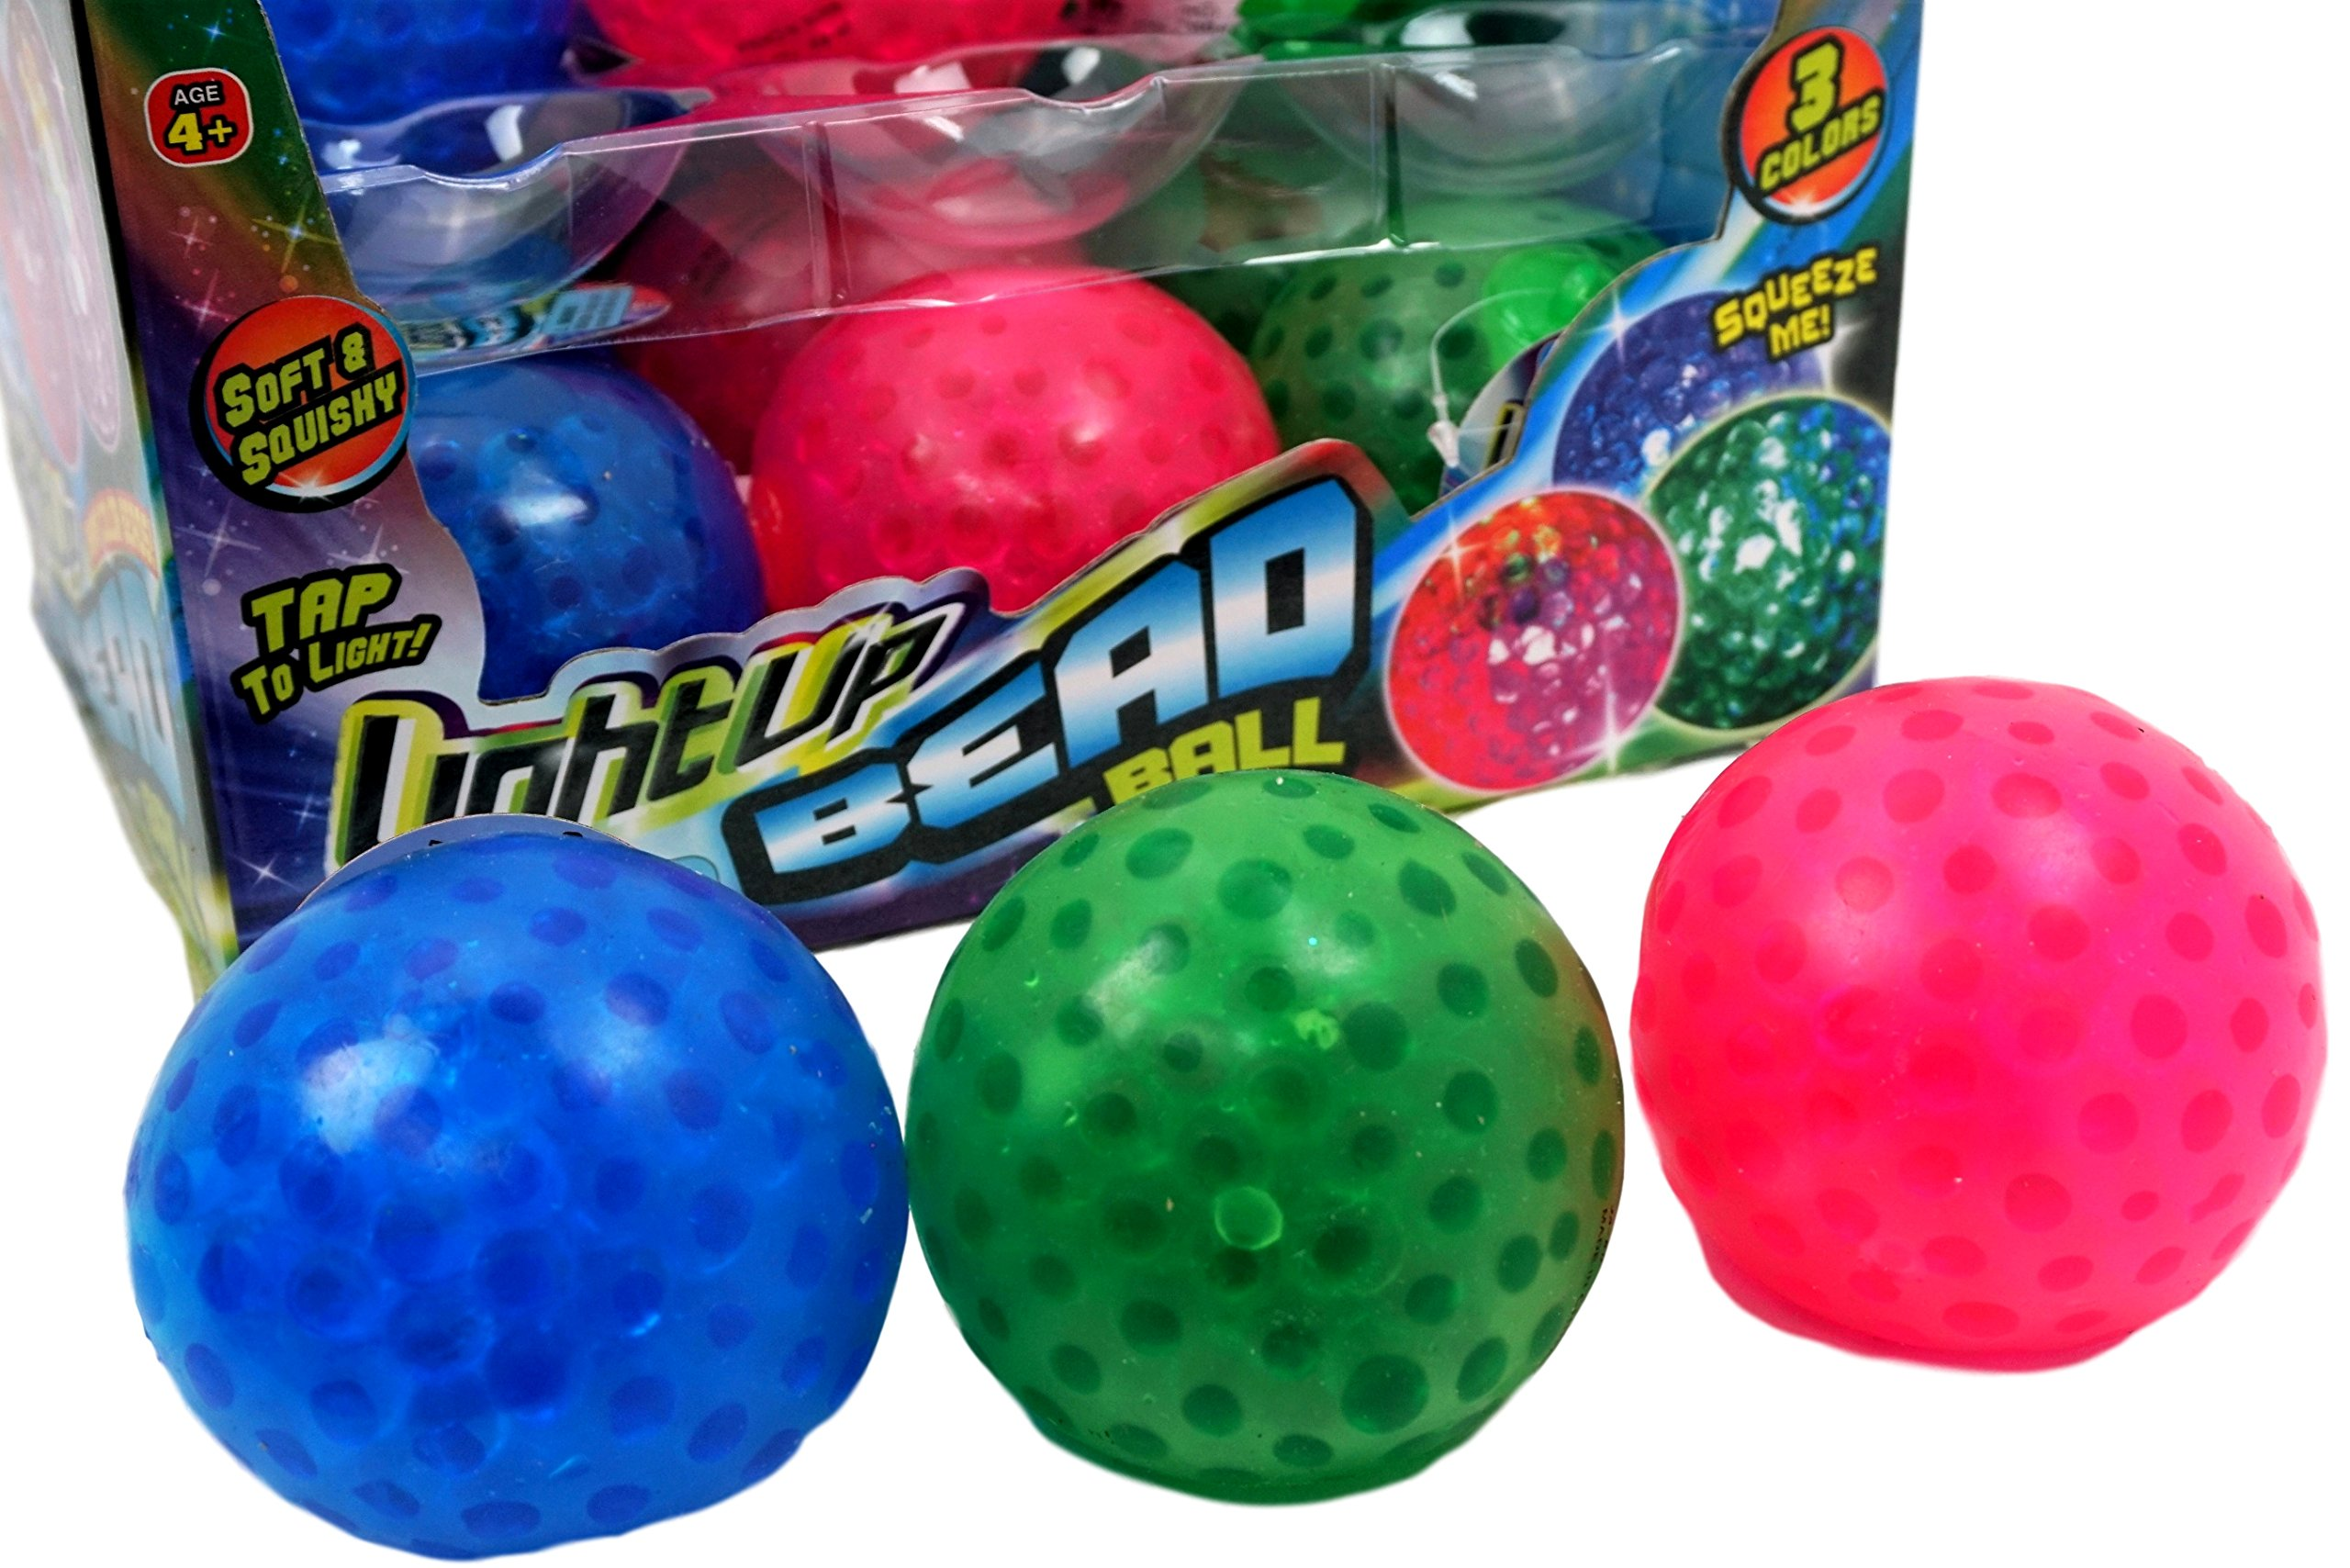 Light Up Bead Bead Ball by JA-RU | Glow in the Dark Squishy Toy Vibrant Colors to Light Up the Room Pack of 1 | Item #4205